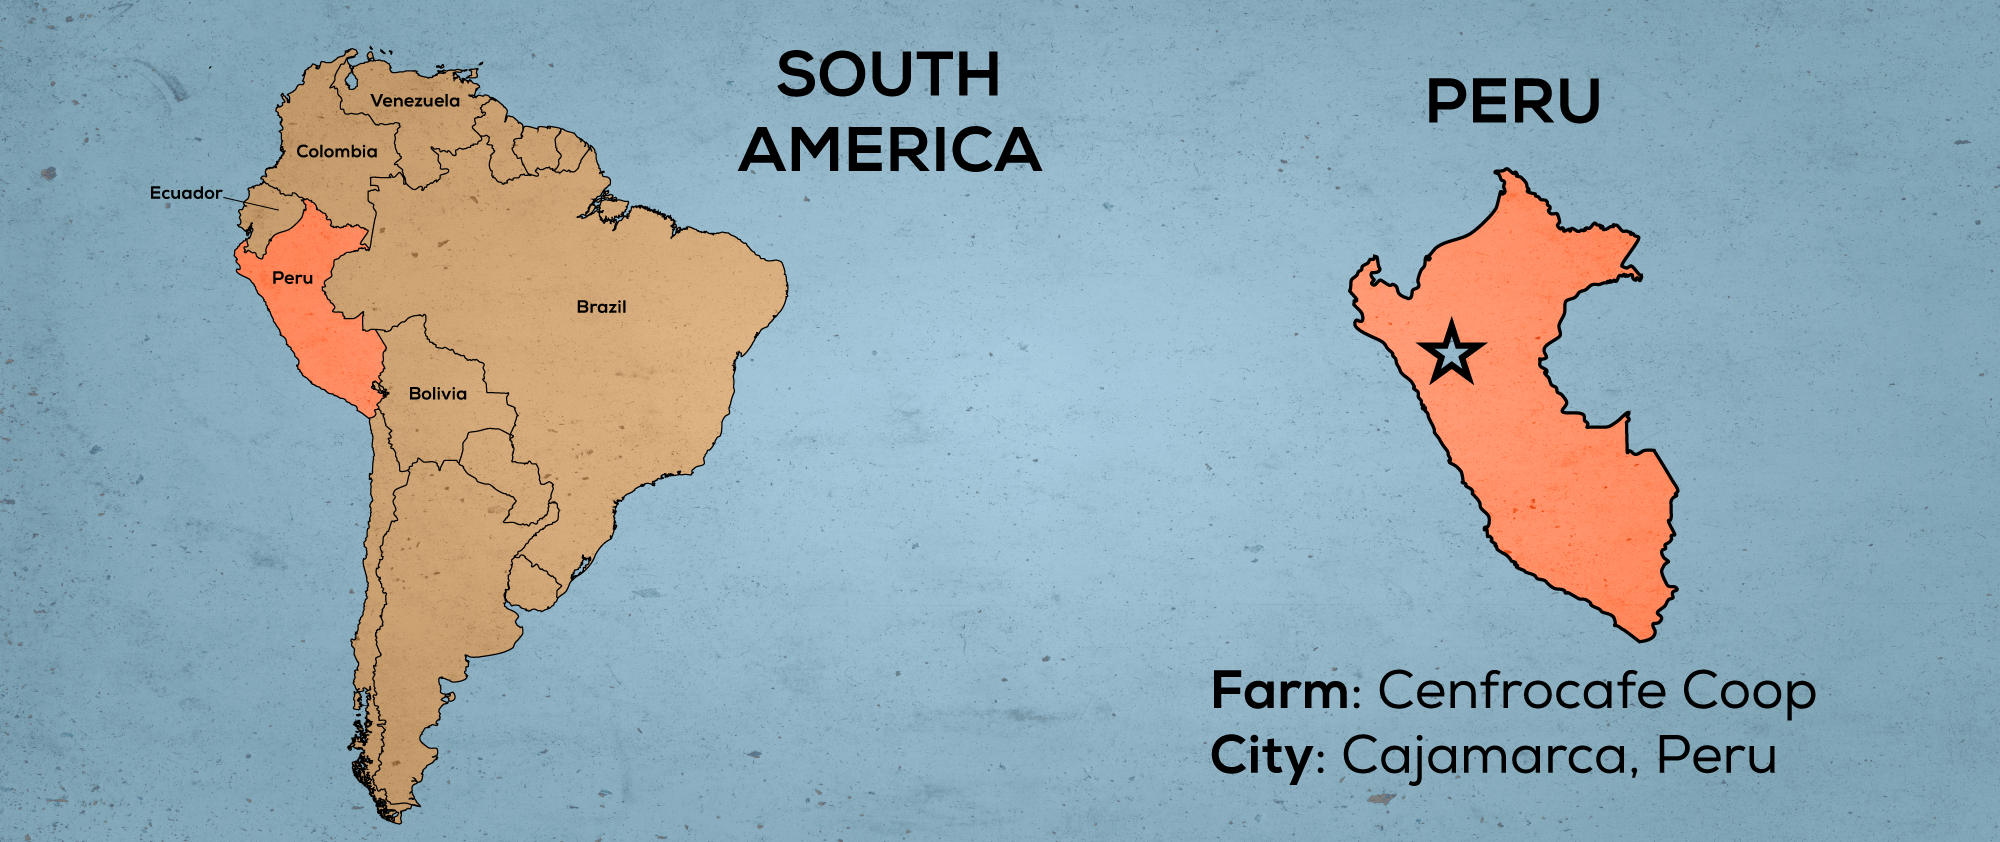 Map of South America & Peru